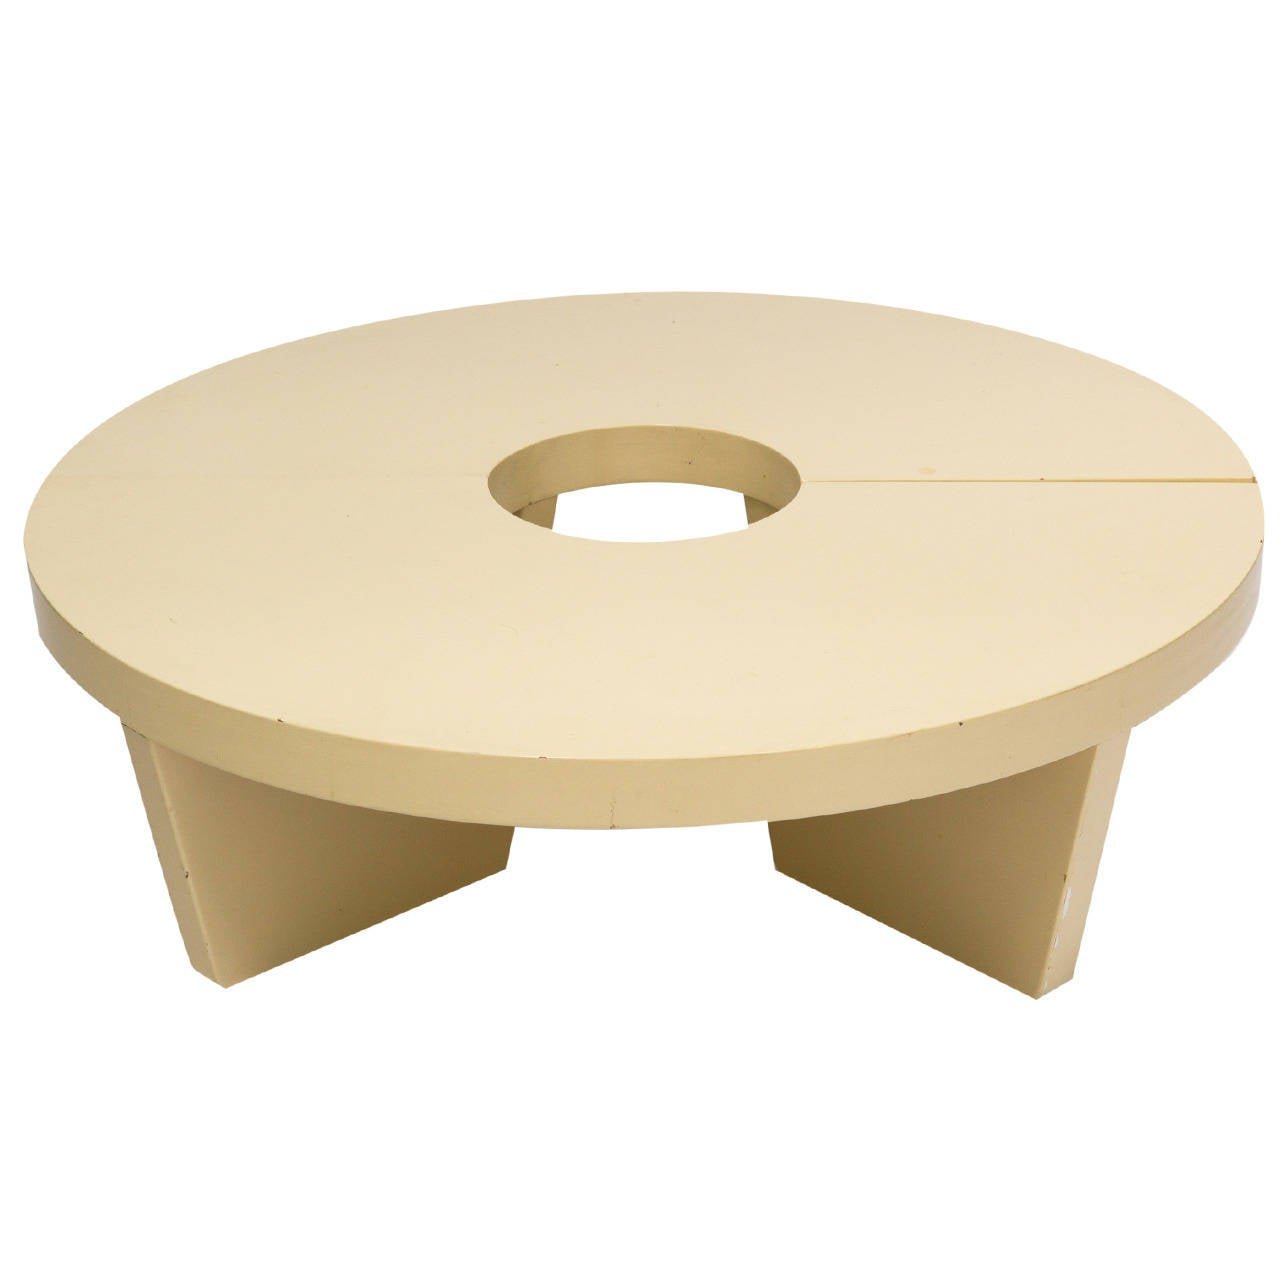 Nucleus coffee table by harvey probber circa 1952 at 1stdibs for Coffee tables harveys